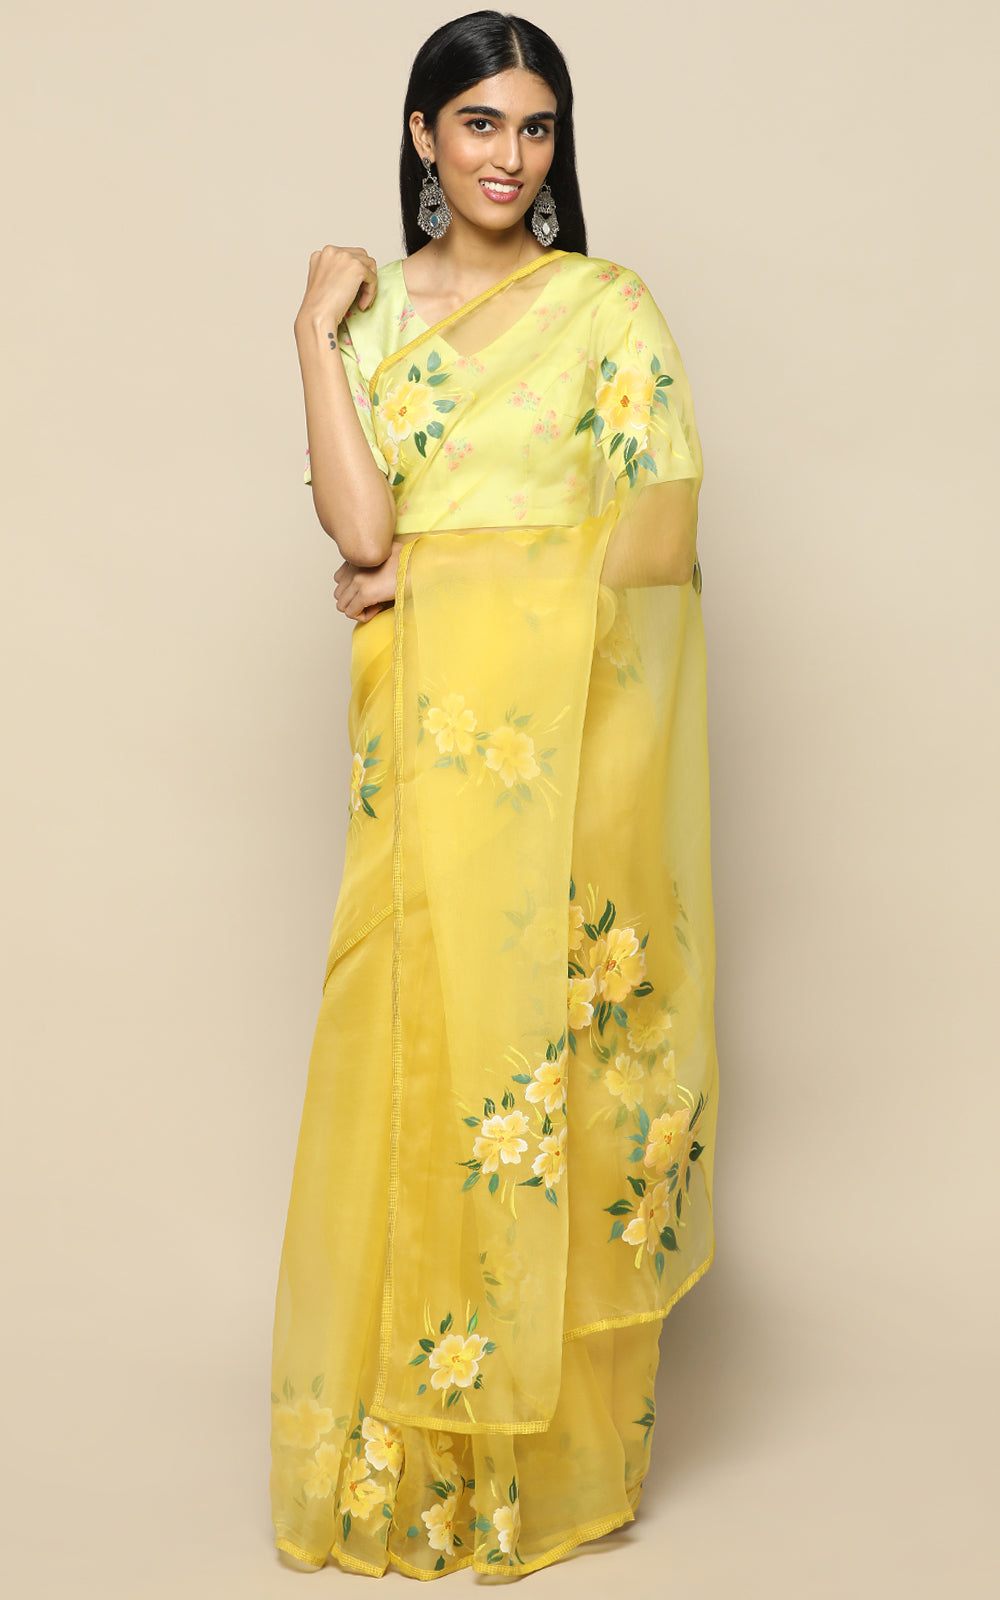 MUSTARD ORGANZA SILK SAREE WITH HANDPAINTED FLOWERS